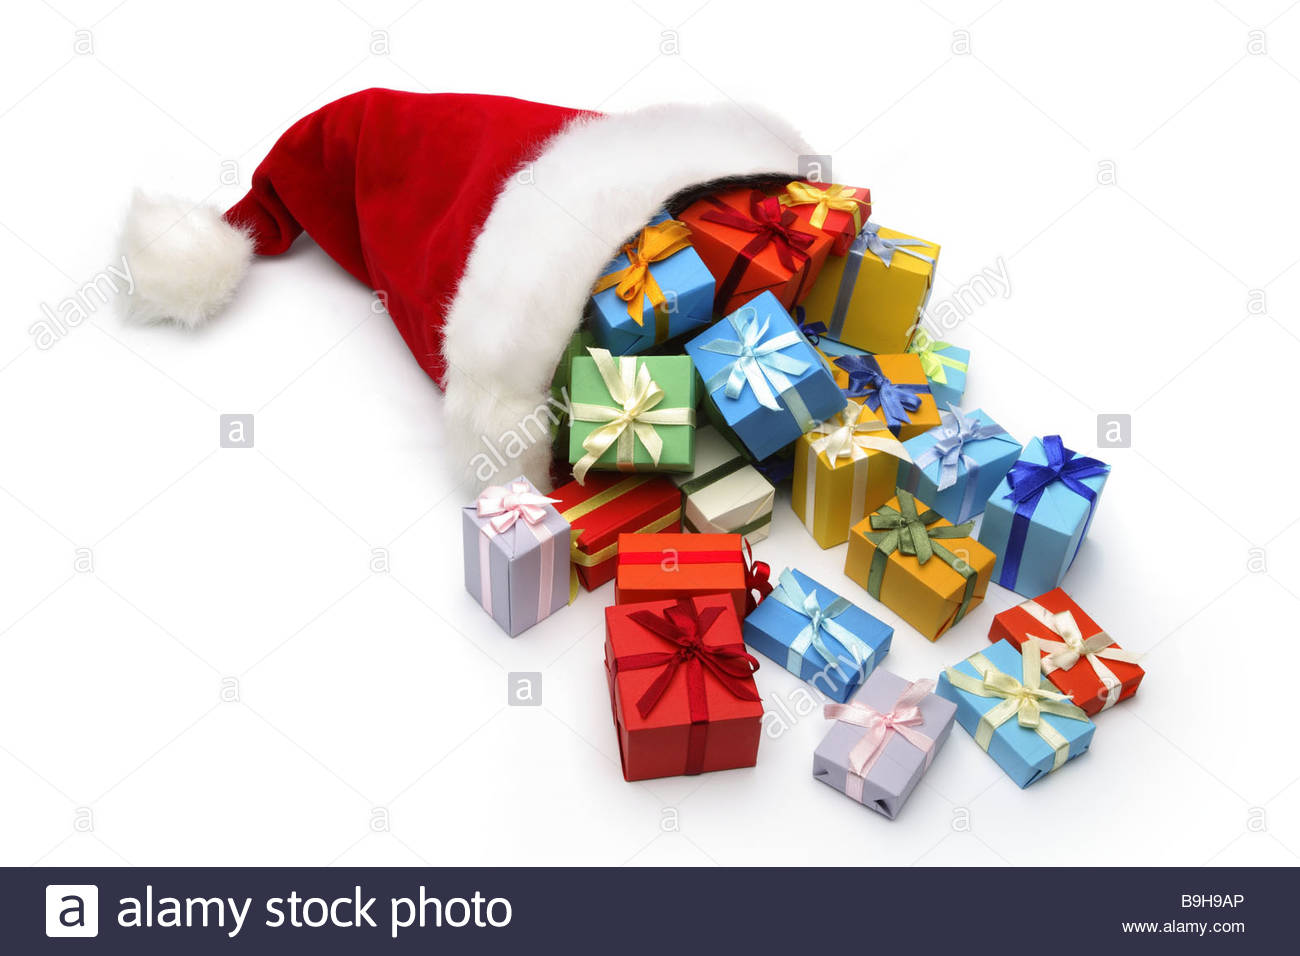 Santa claus cap gifts christmas gifts present surprises packet santa claus cap gifts christmas gifts present surprises packet christmas gift giving holiday ceremony festivity packed giving negle Gallery